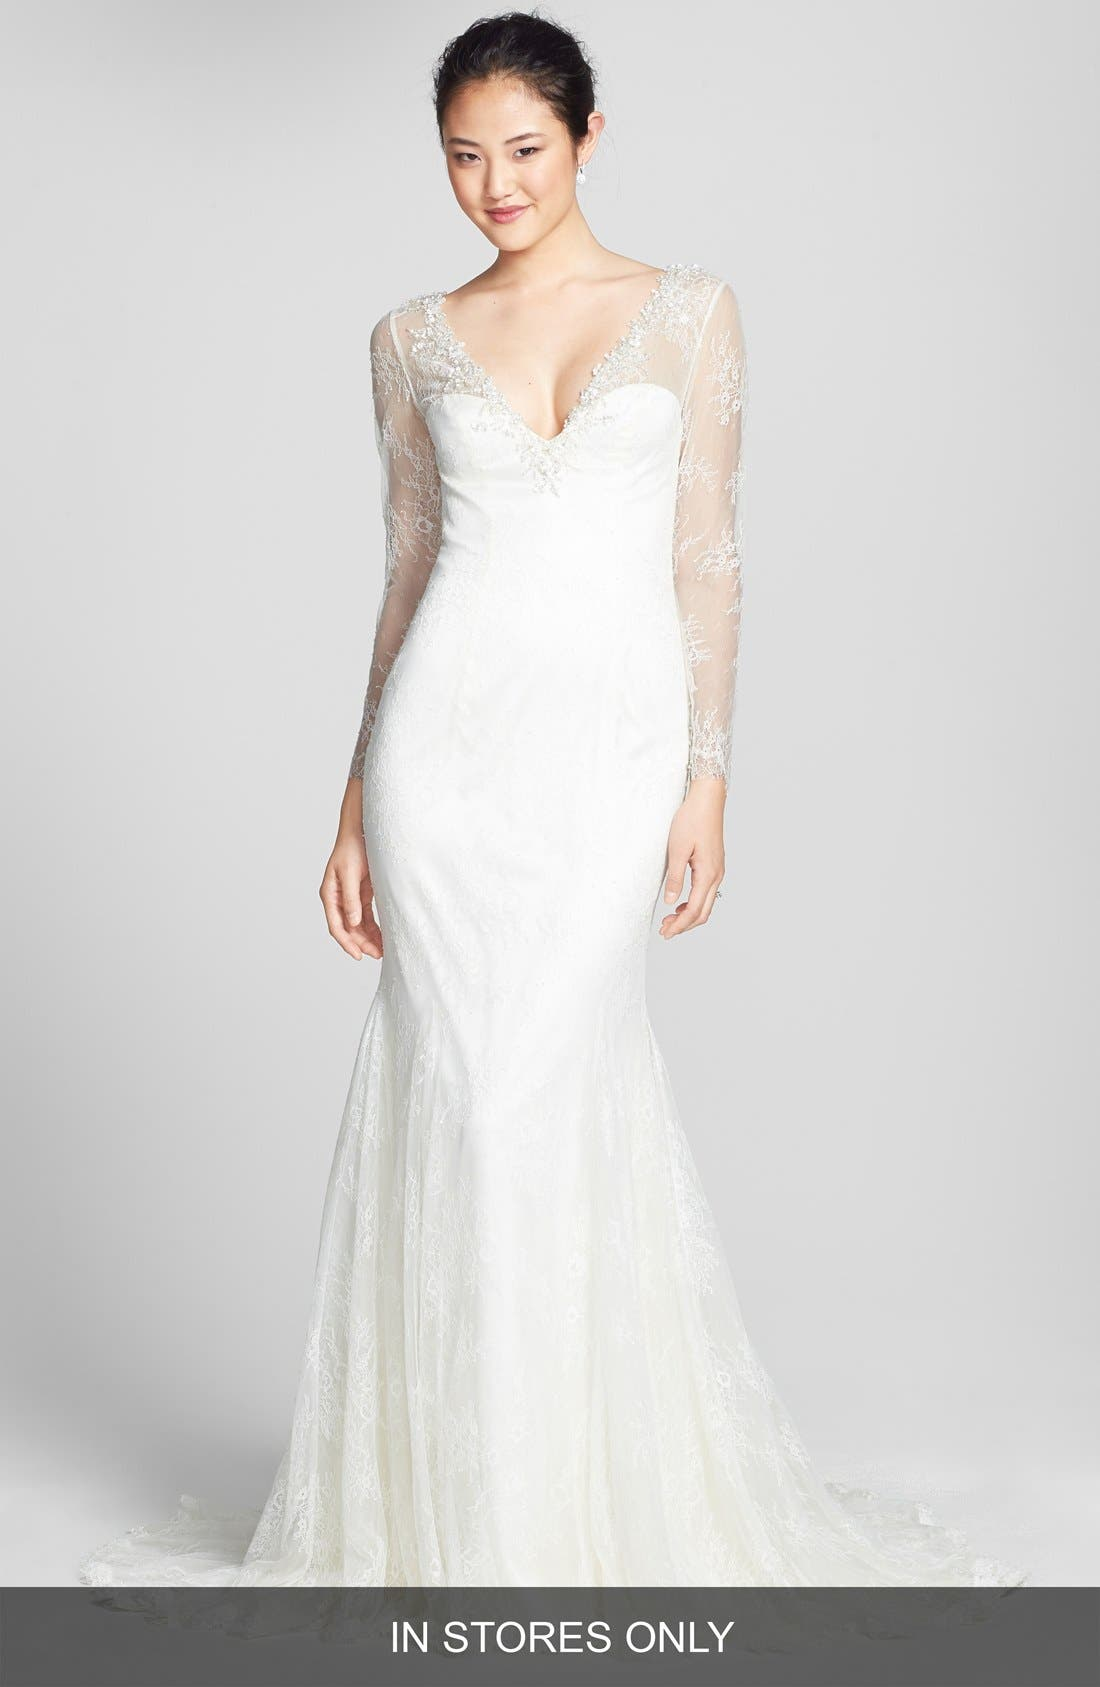 Alternate Image 1 Selected - Badgley Mischka Bridal 'Barbara' Embellished Lace Overlay Trumpet Dress (In Stores Only)